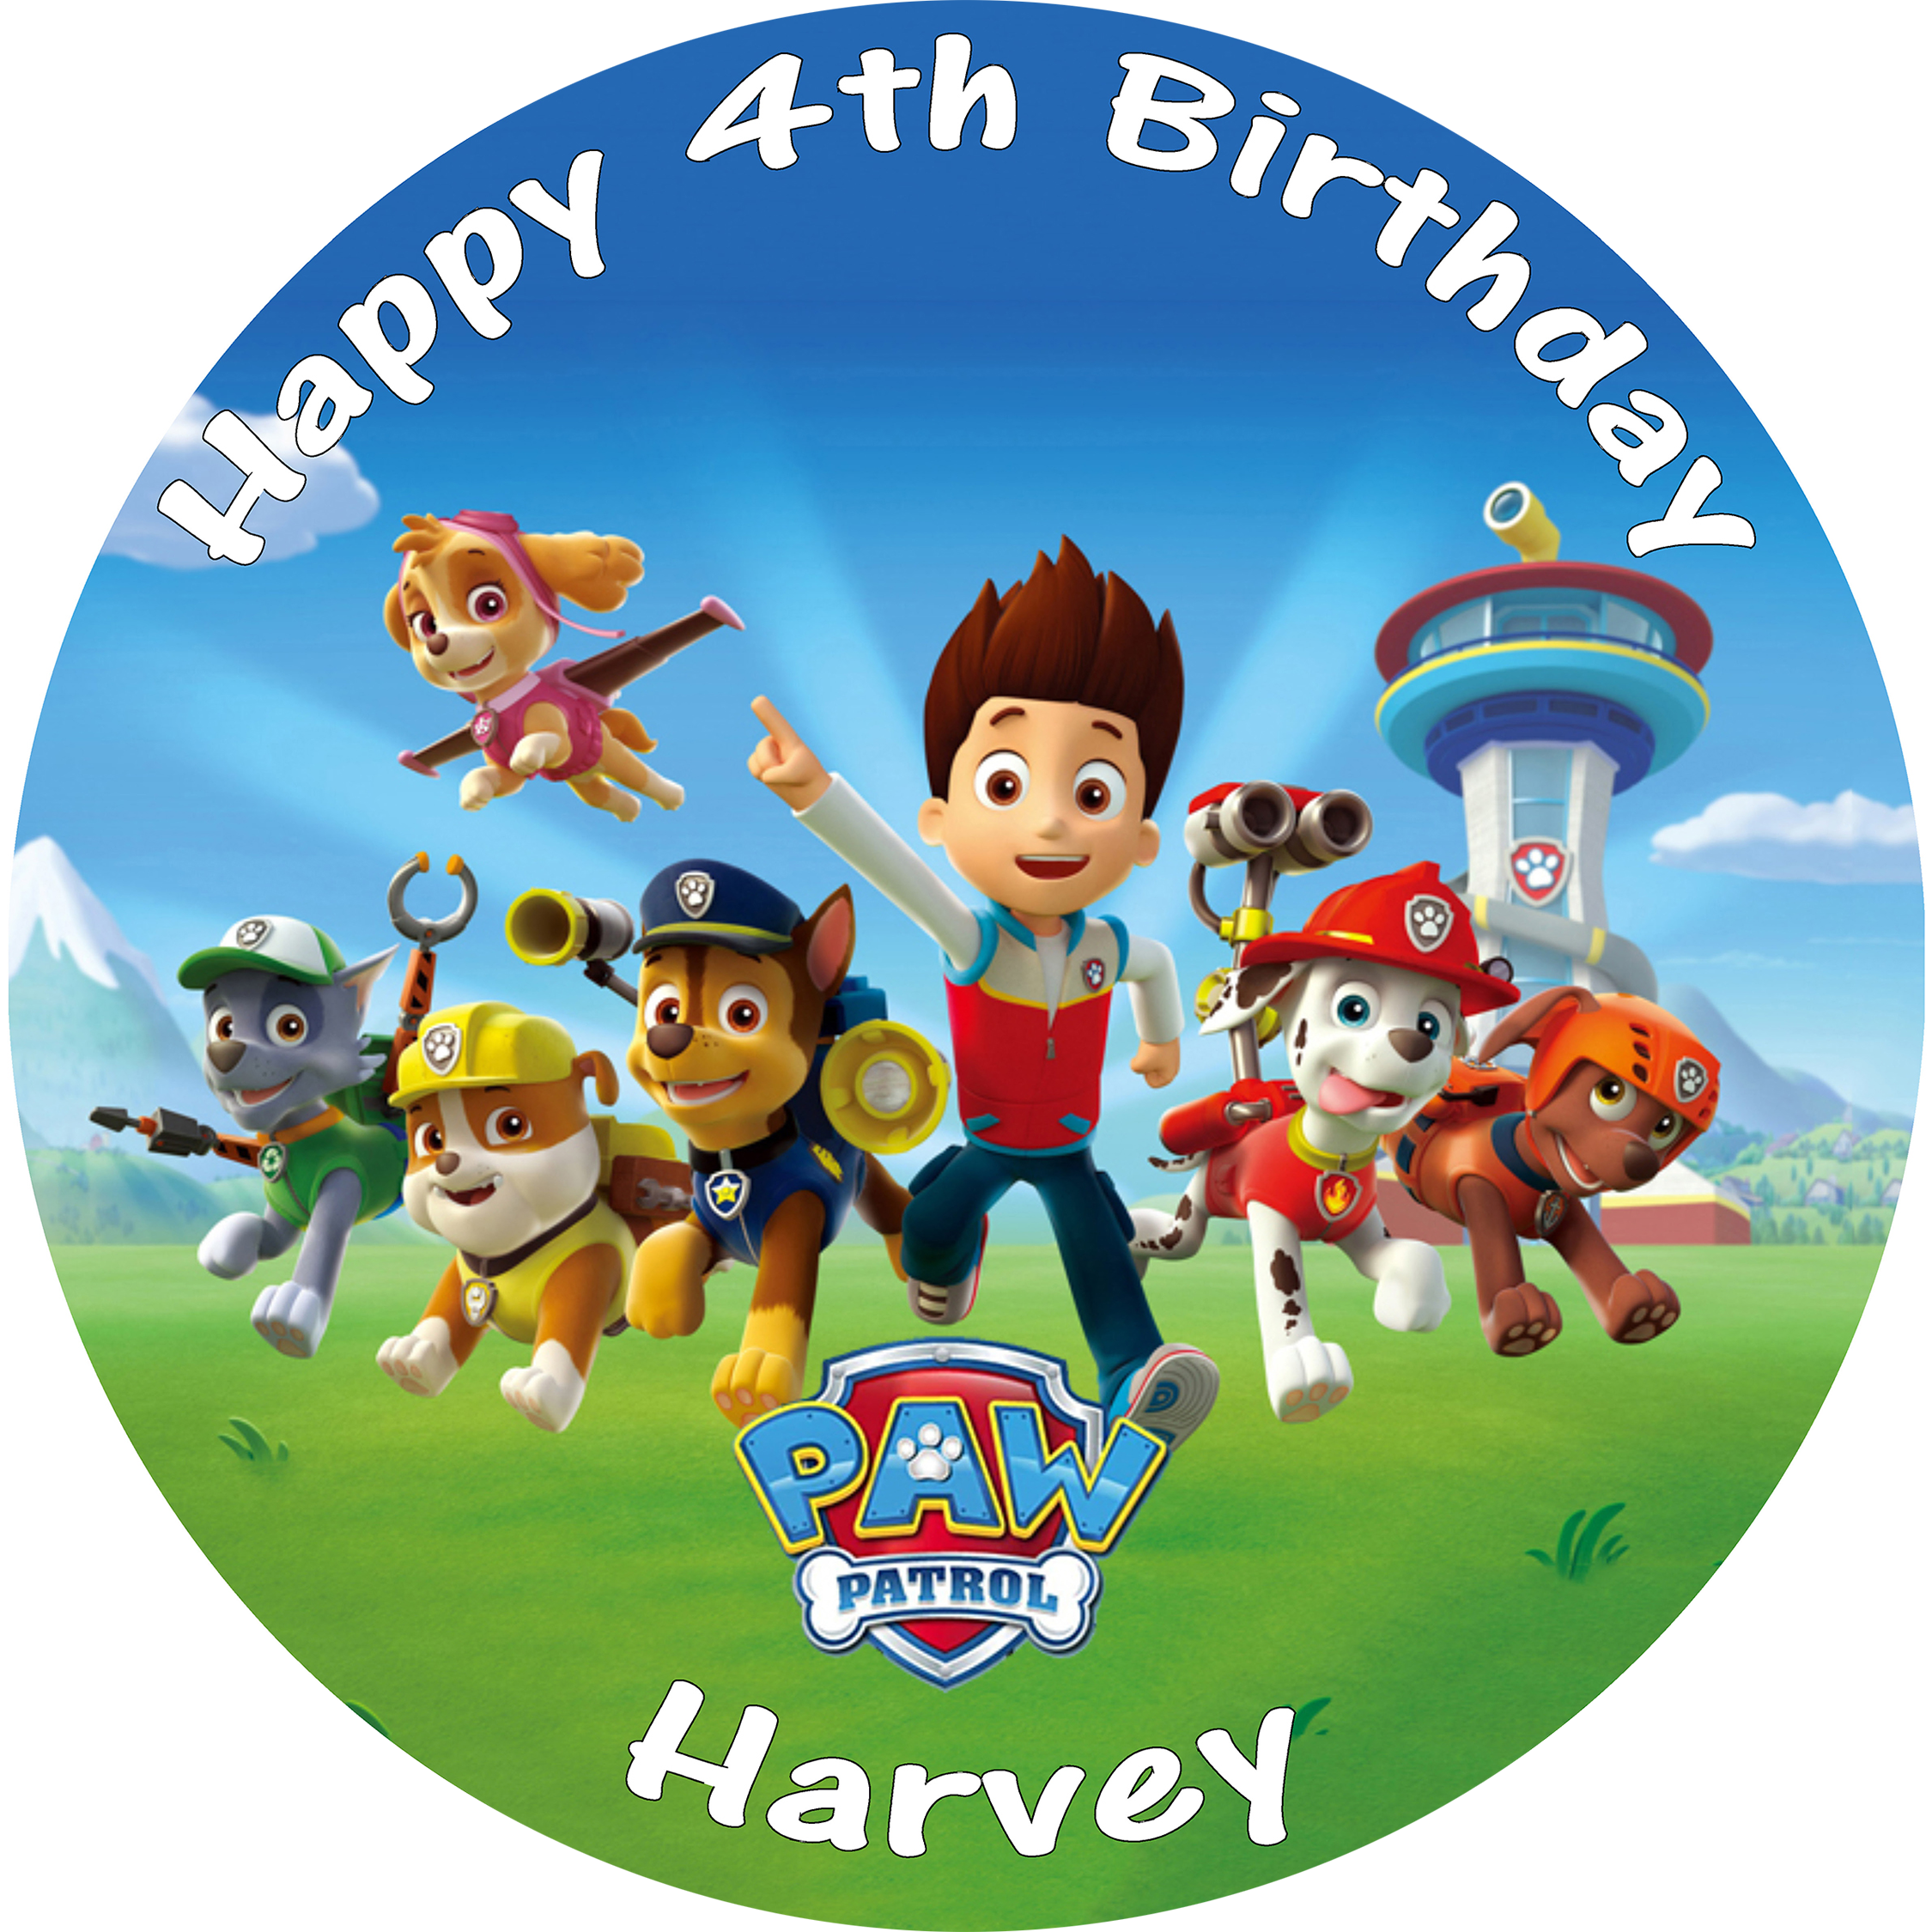 PAW PATROL CAKE TOPPER BIRTHDAY EDIBLE ROUND PRINTED DECORATION